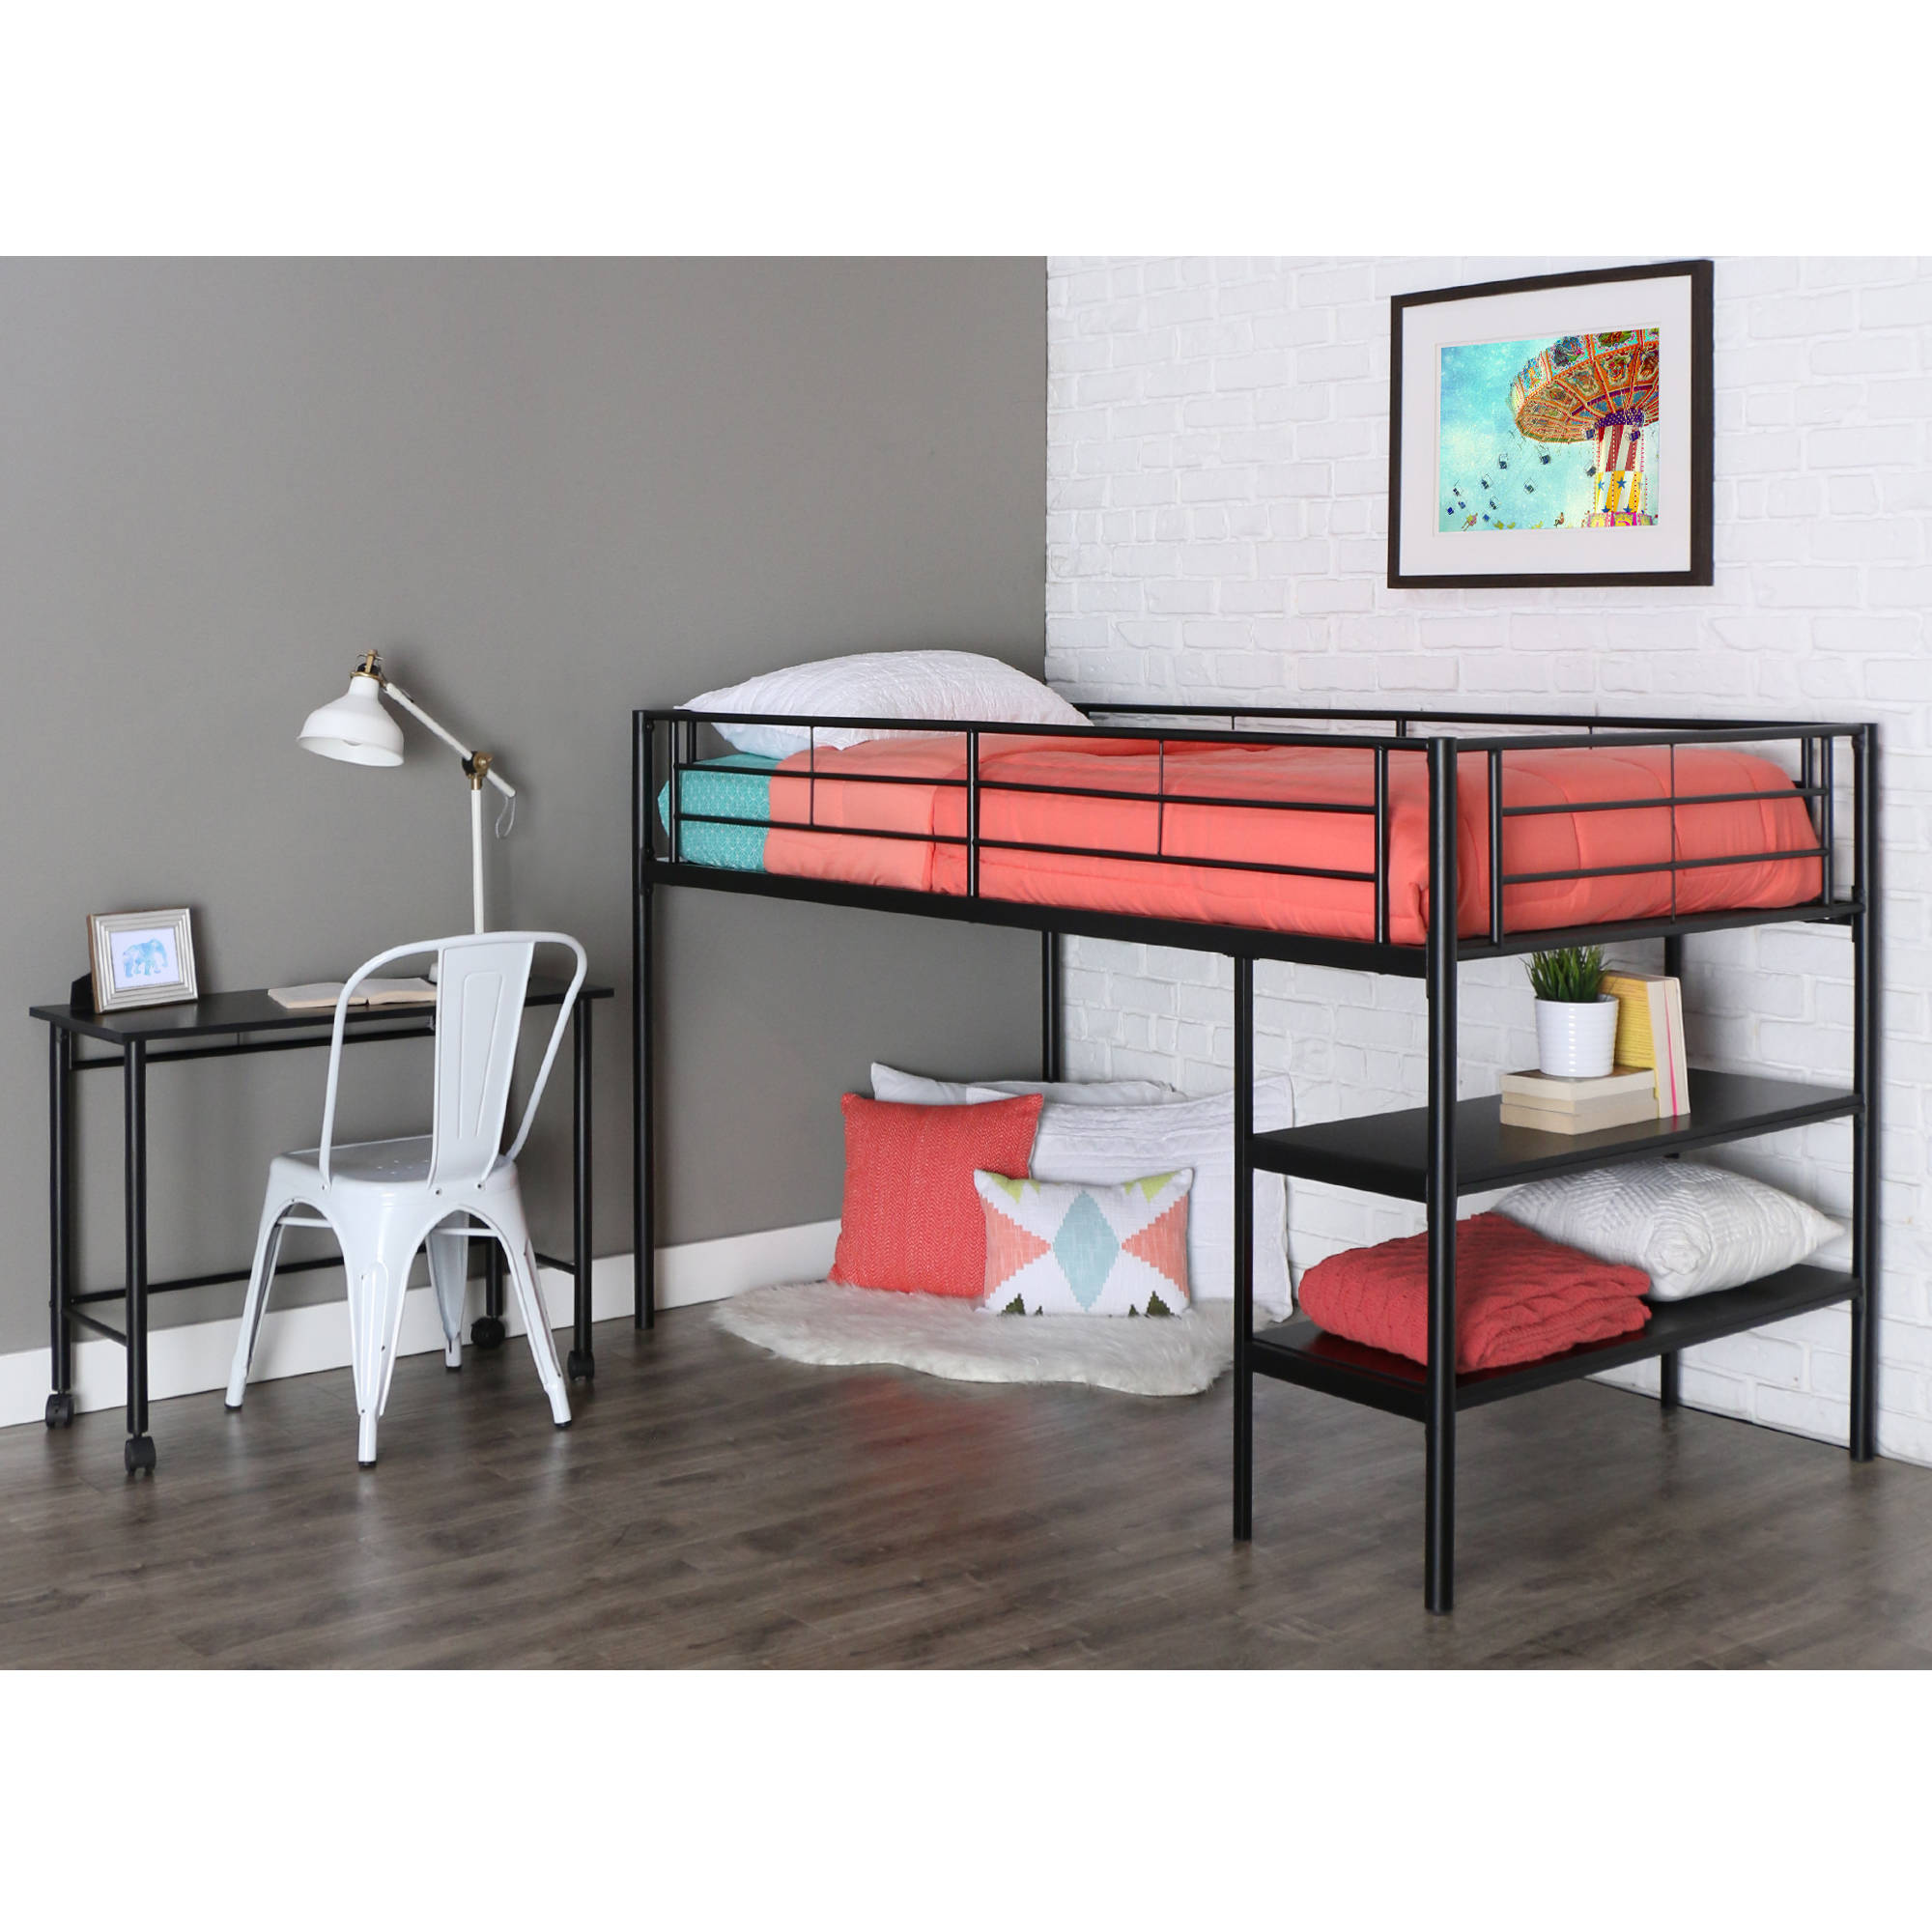 twin with desk depot metal beds bunk bed loft silver p the dhp home full black screen